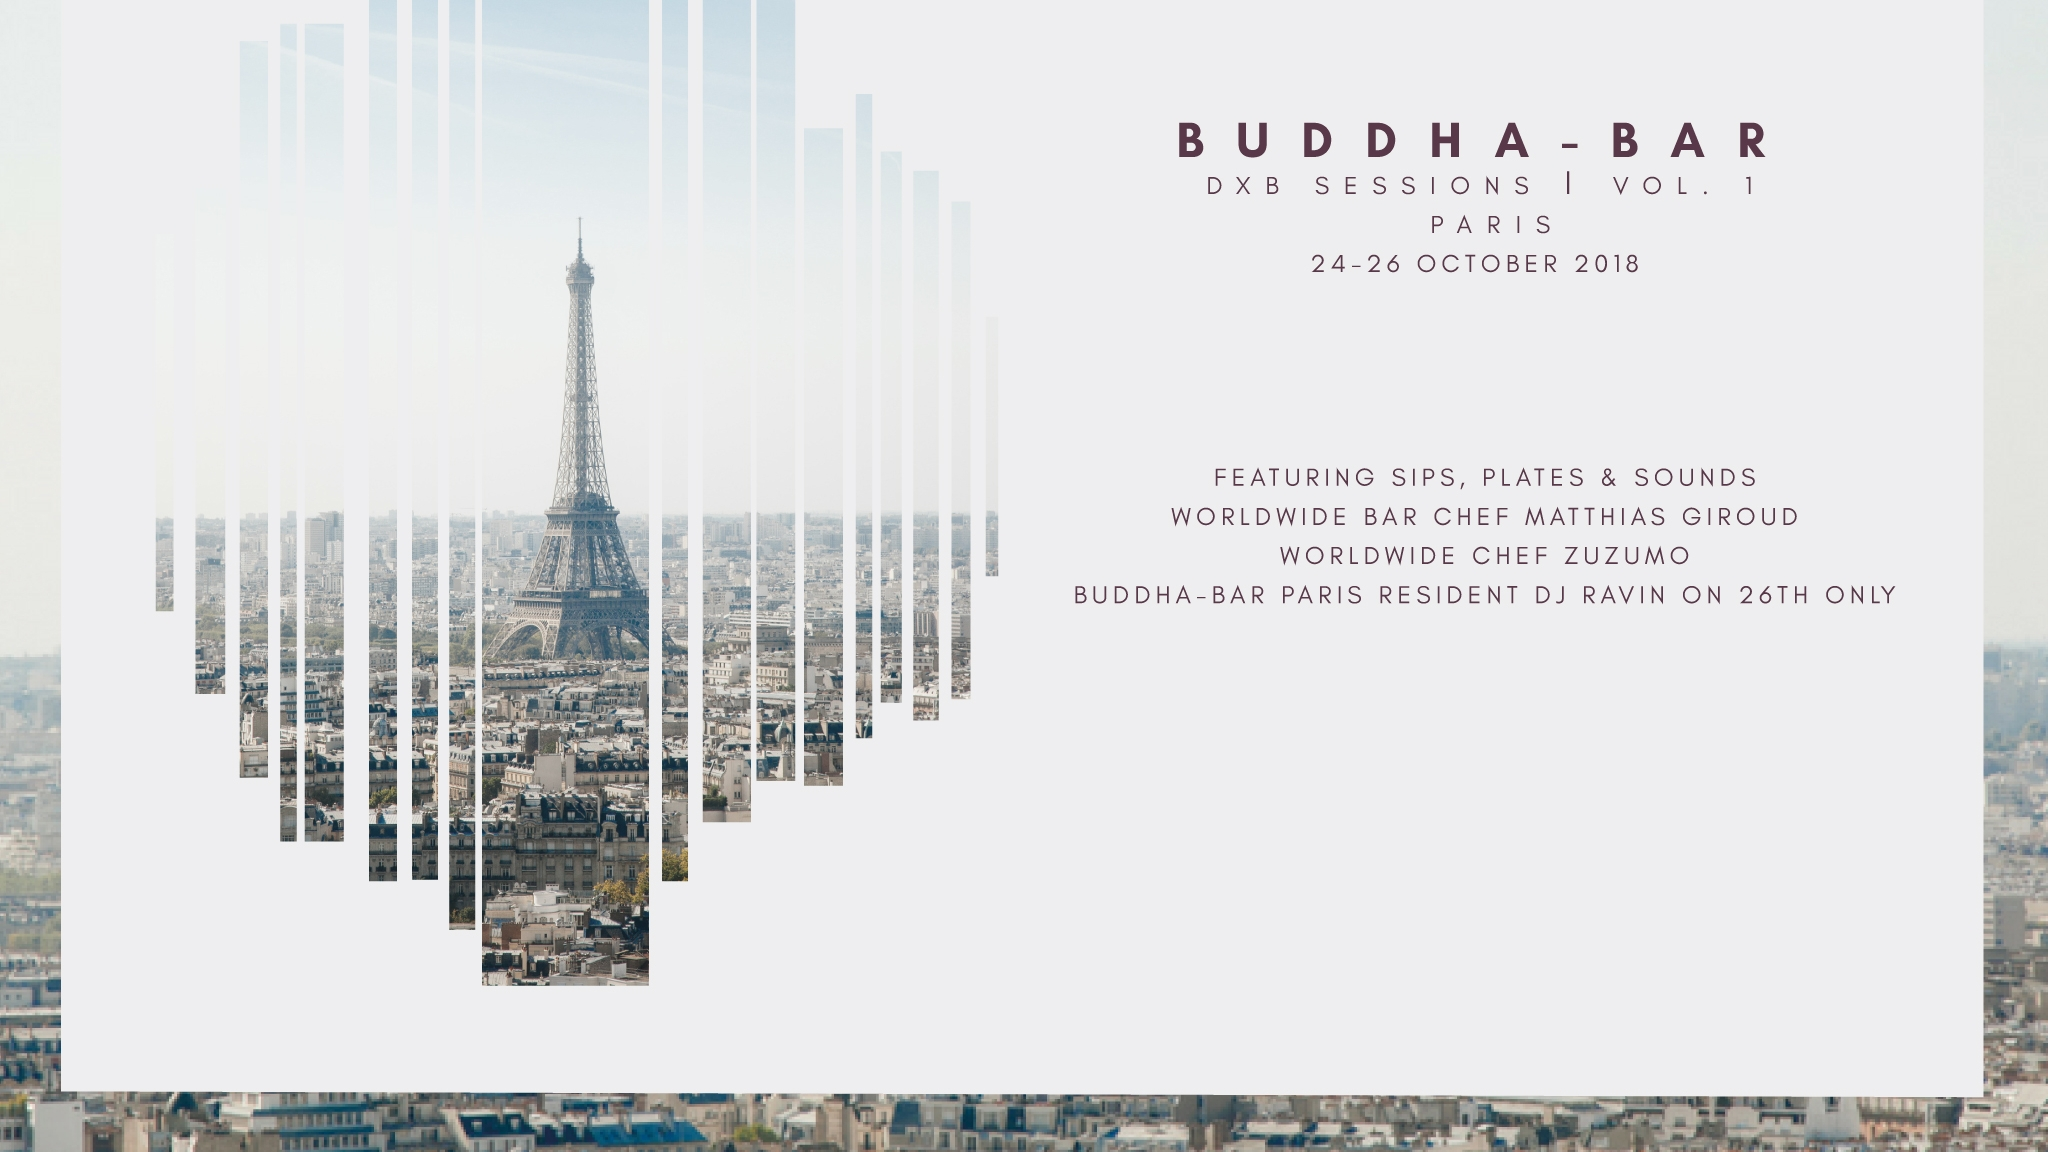 Buddha-Bar DXB Sessions Vol. 1